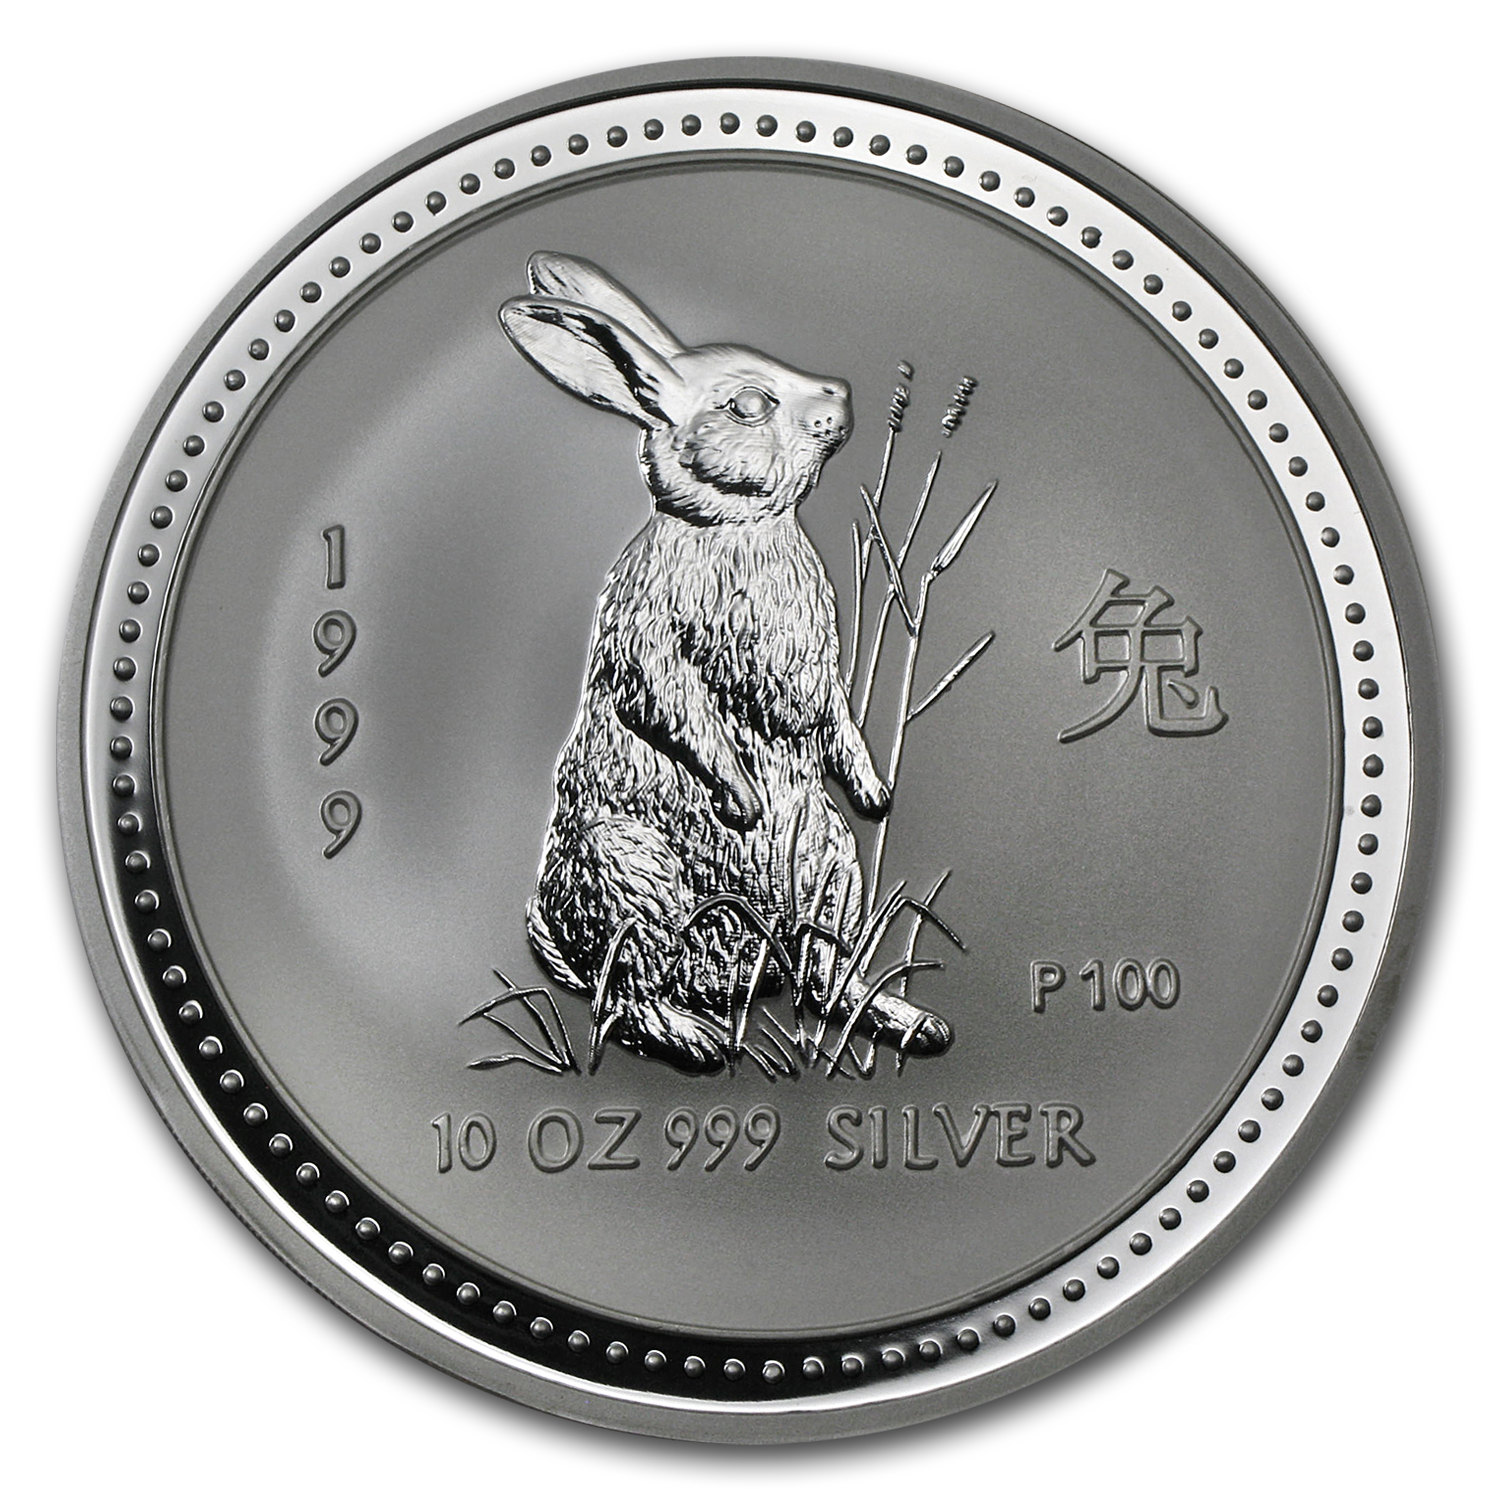 1999 10 oz Silver Australian Year of the Rabbit BU